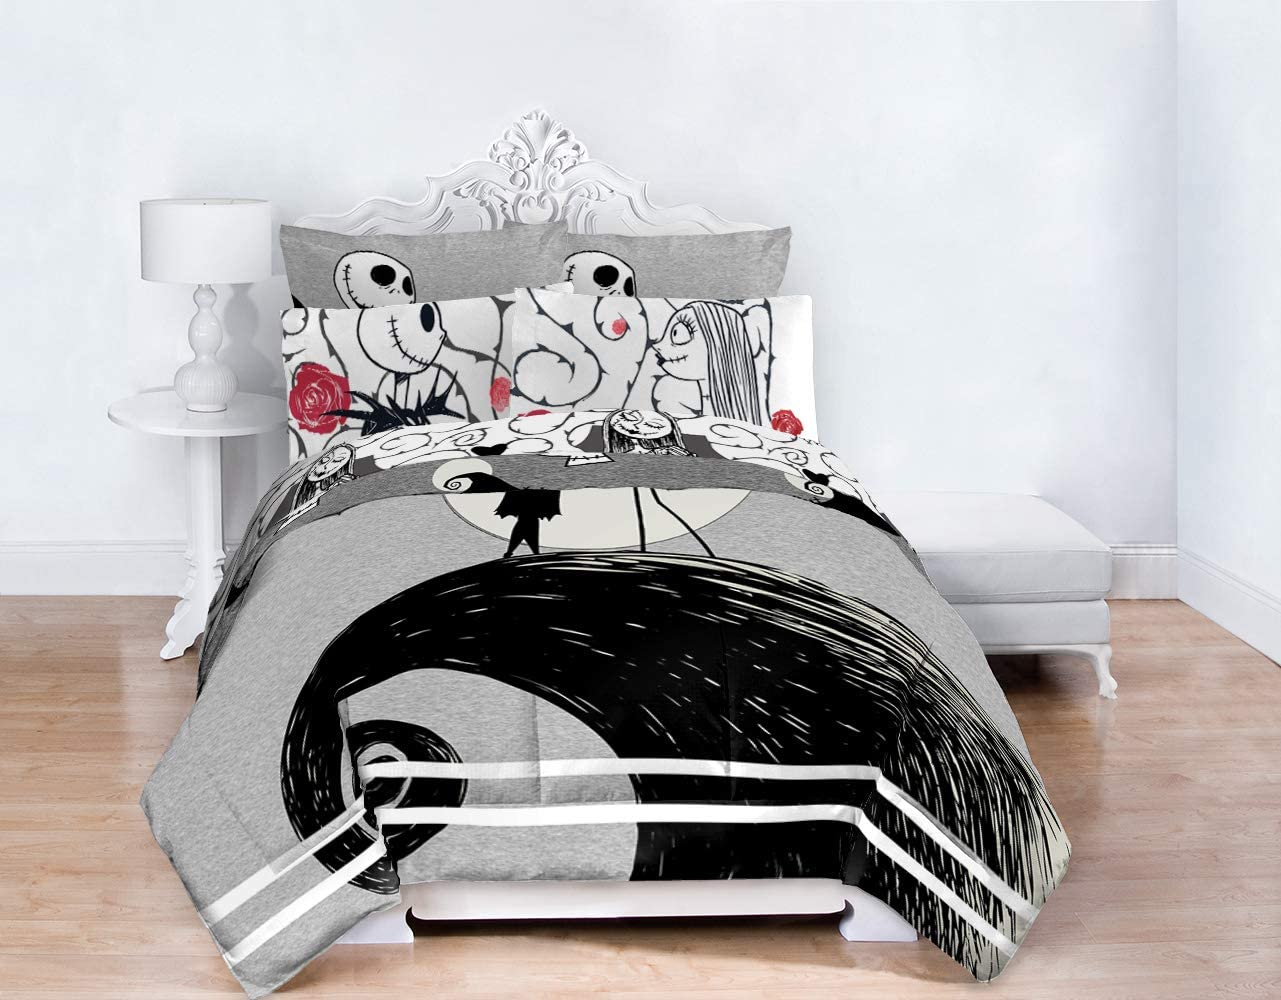 Disney Nightmare Before Christmas Moonlight 7 Piece Full Bed Set - Includes Reversible Comforter & Sheet Set - Features Jack Skellington and Sally